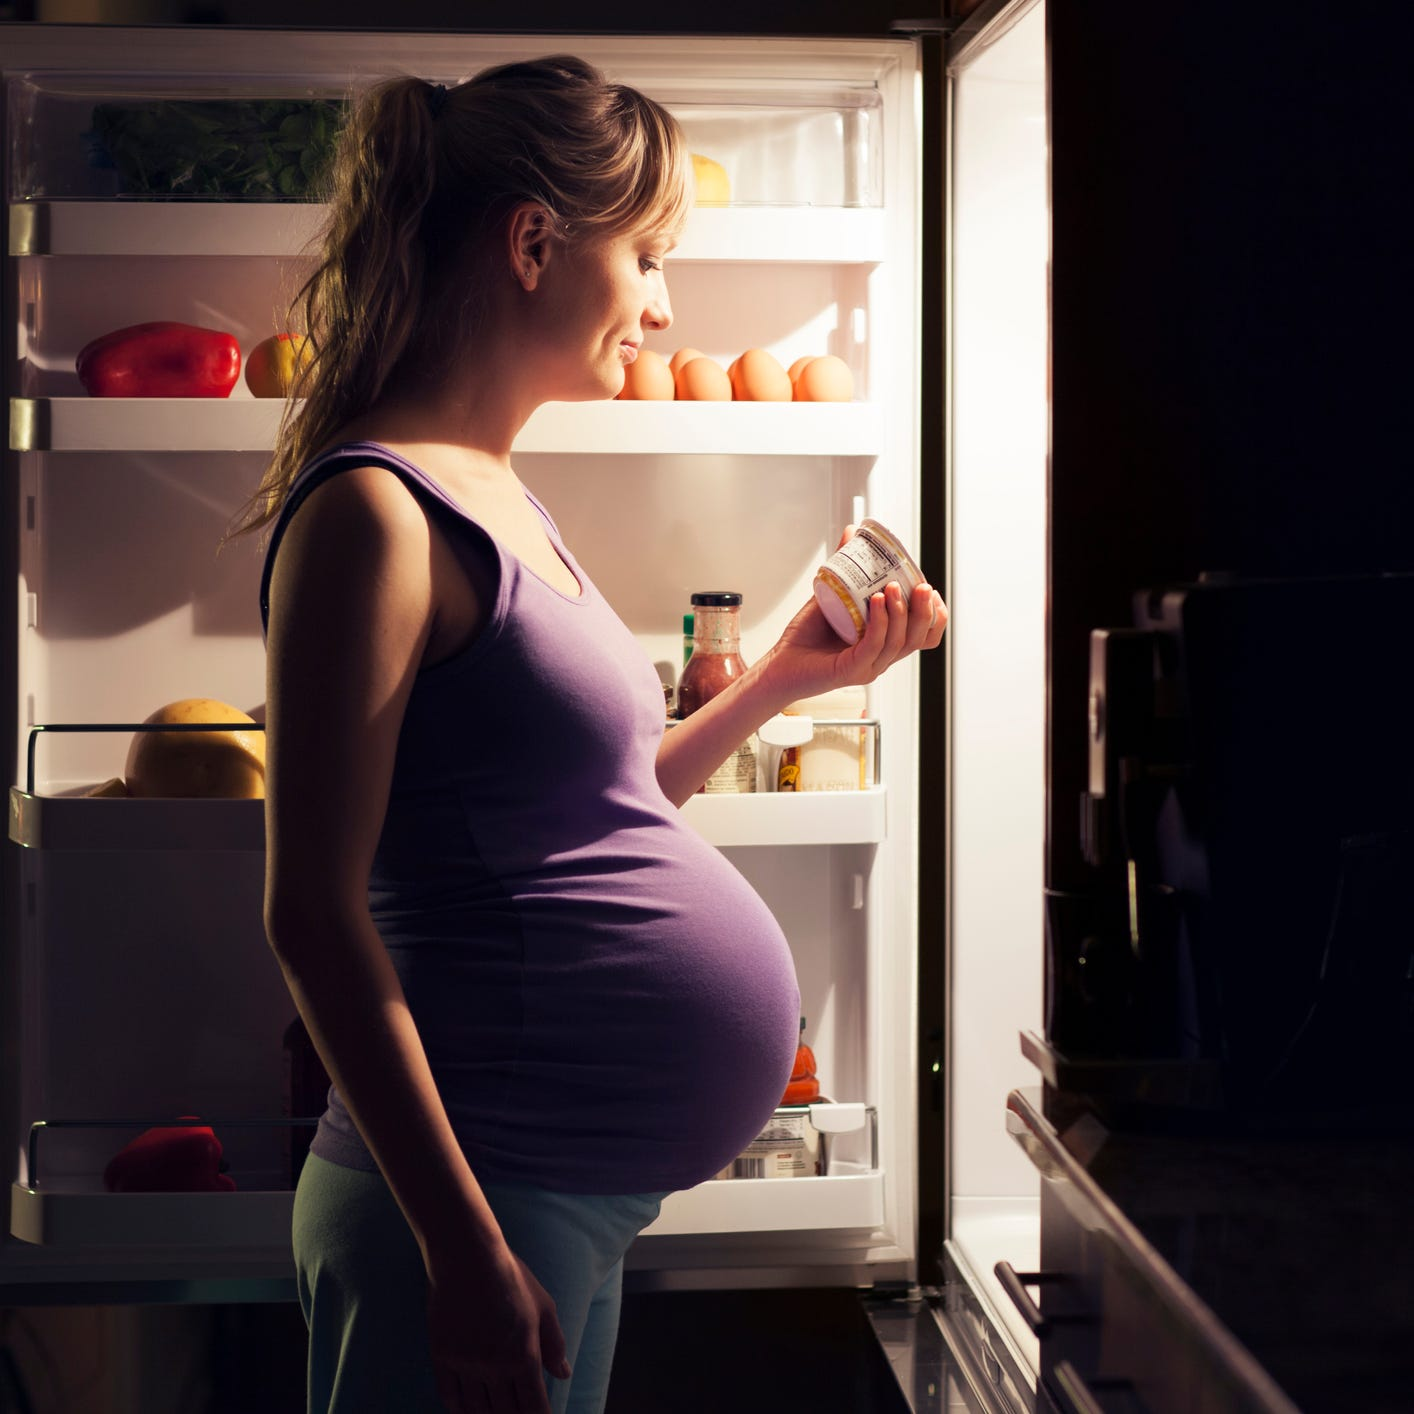 Pregnant women should be mindful of avoiding foods and drinks that could be harmful to a fetus.